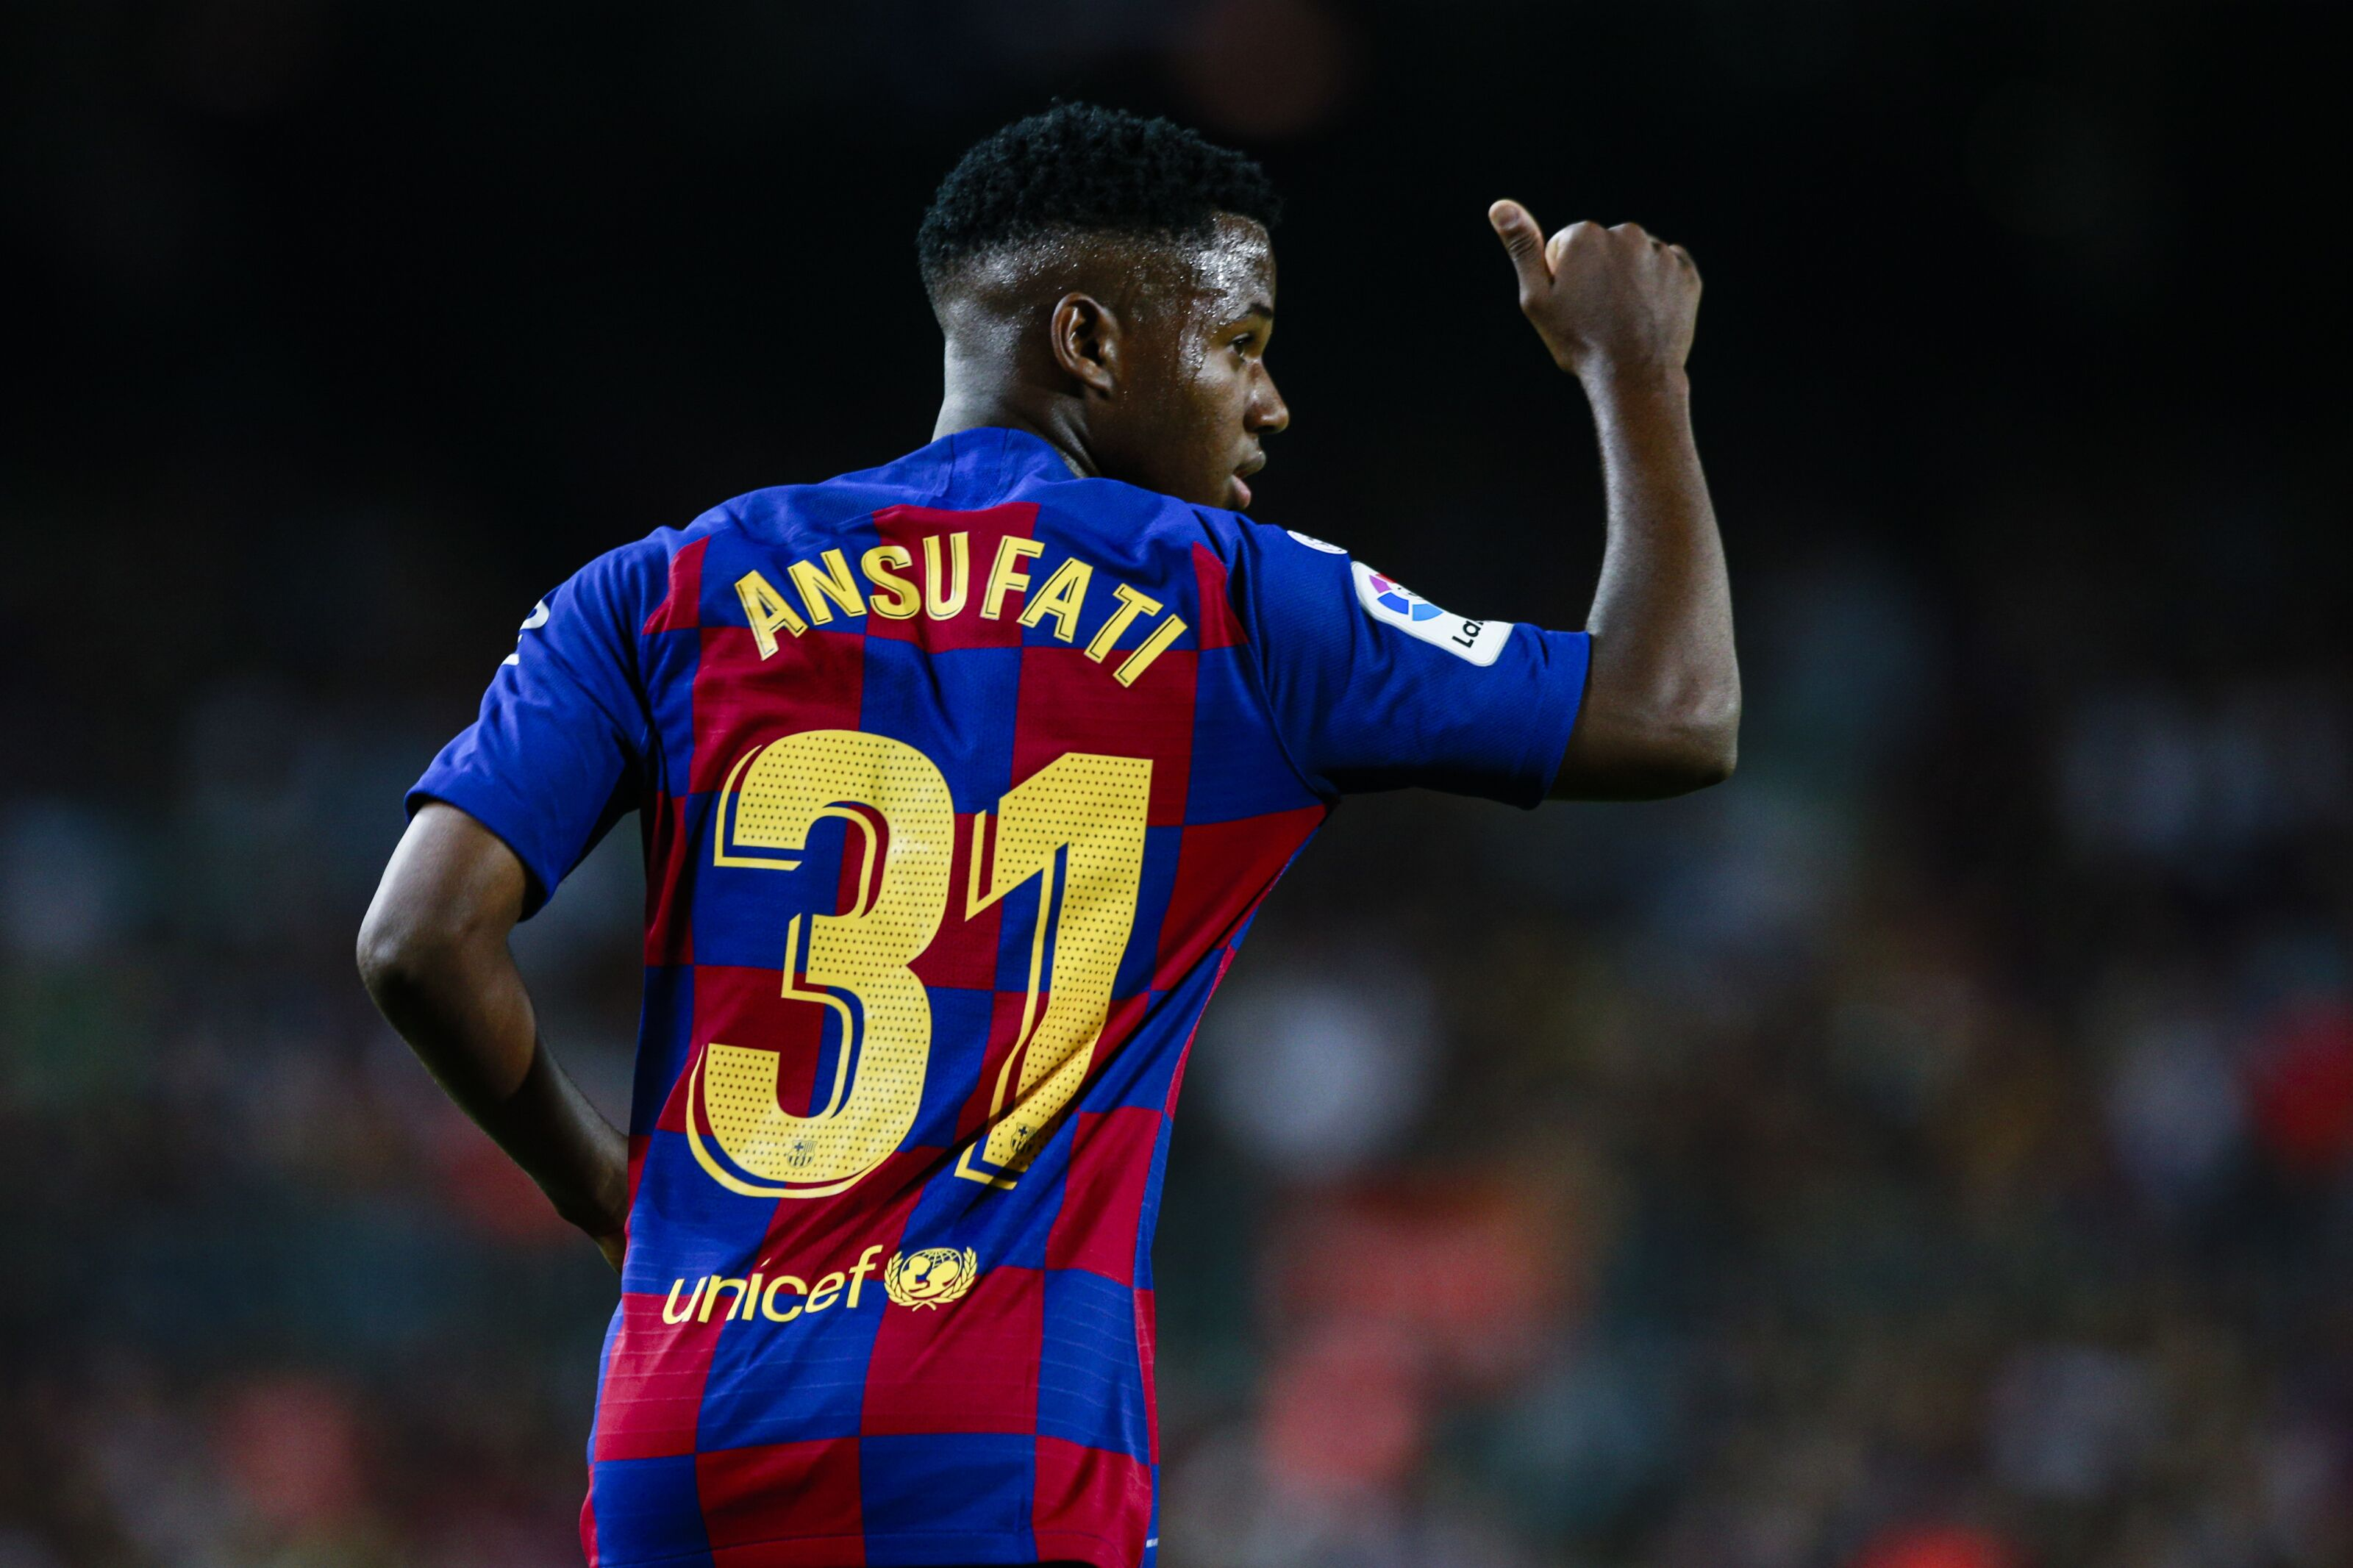 La Masia is back with a bang at Barcelona under Valverde and Abidal